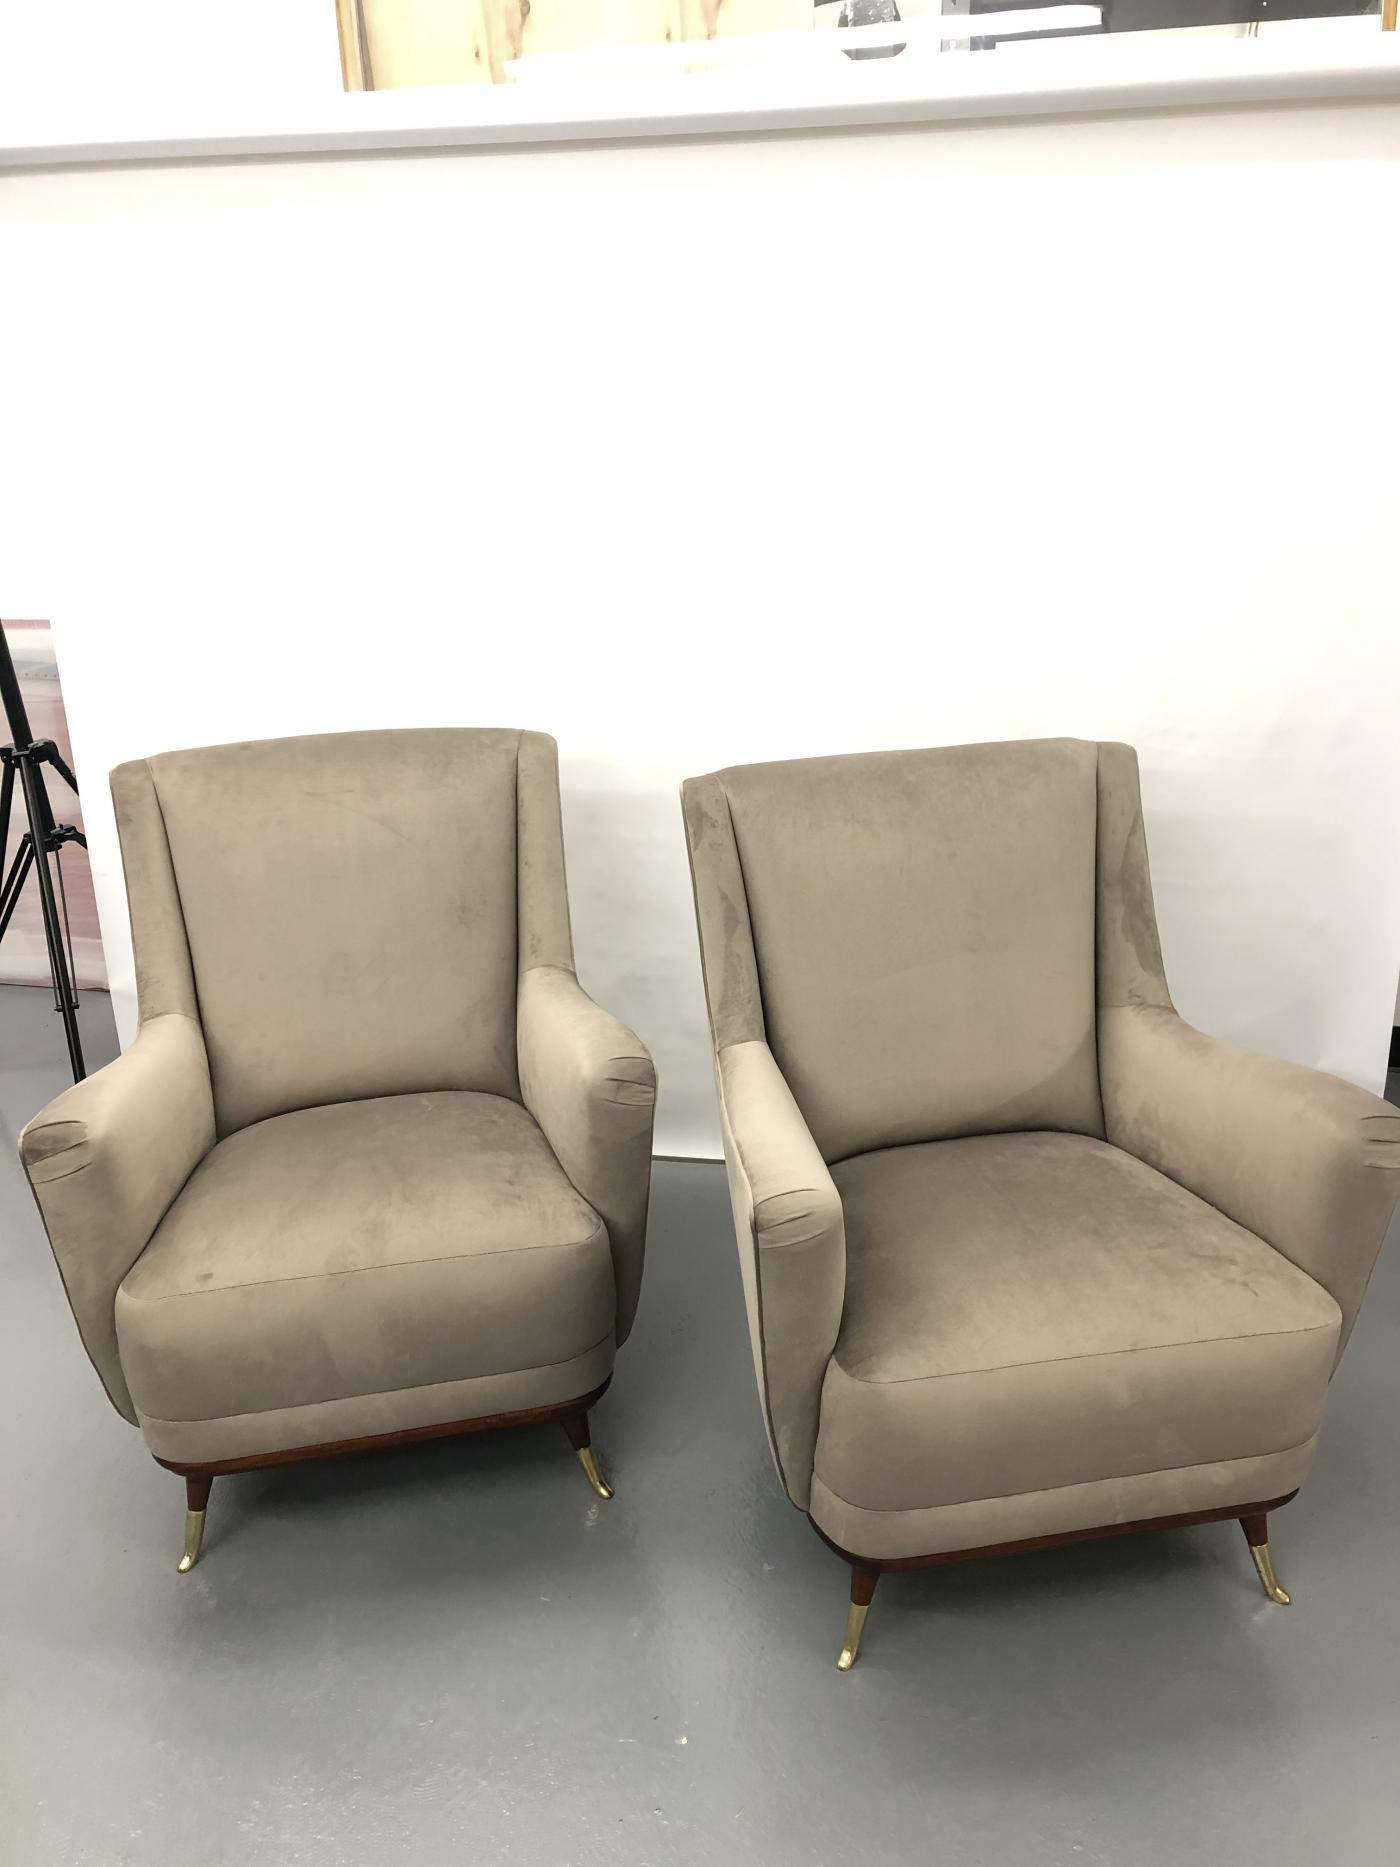 Pair of Mid Century Club Chairs.